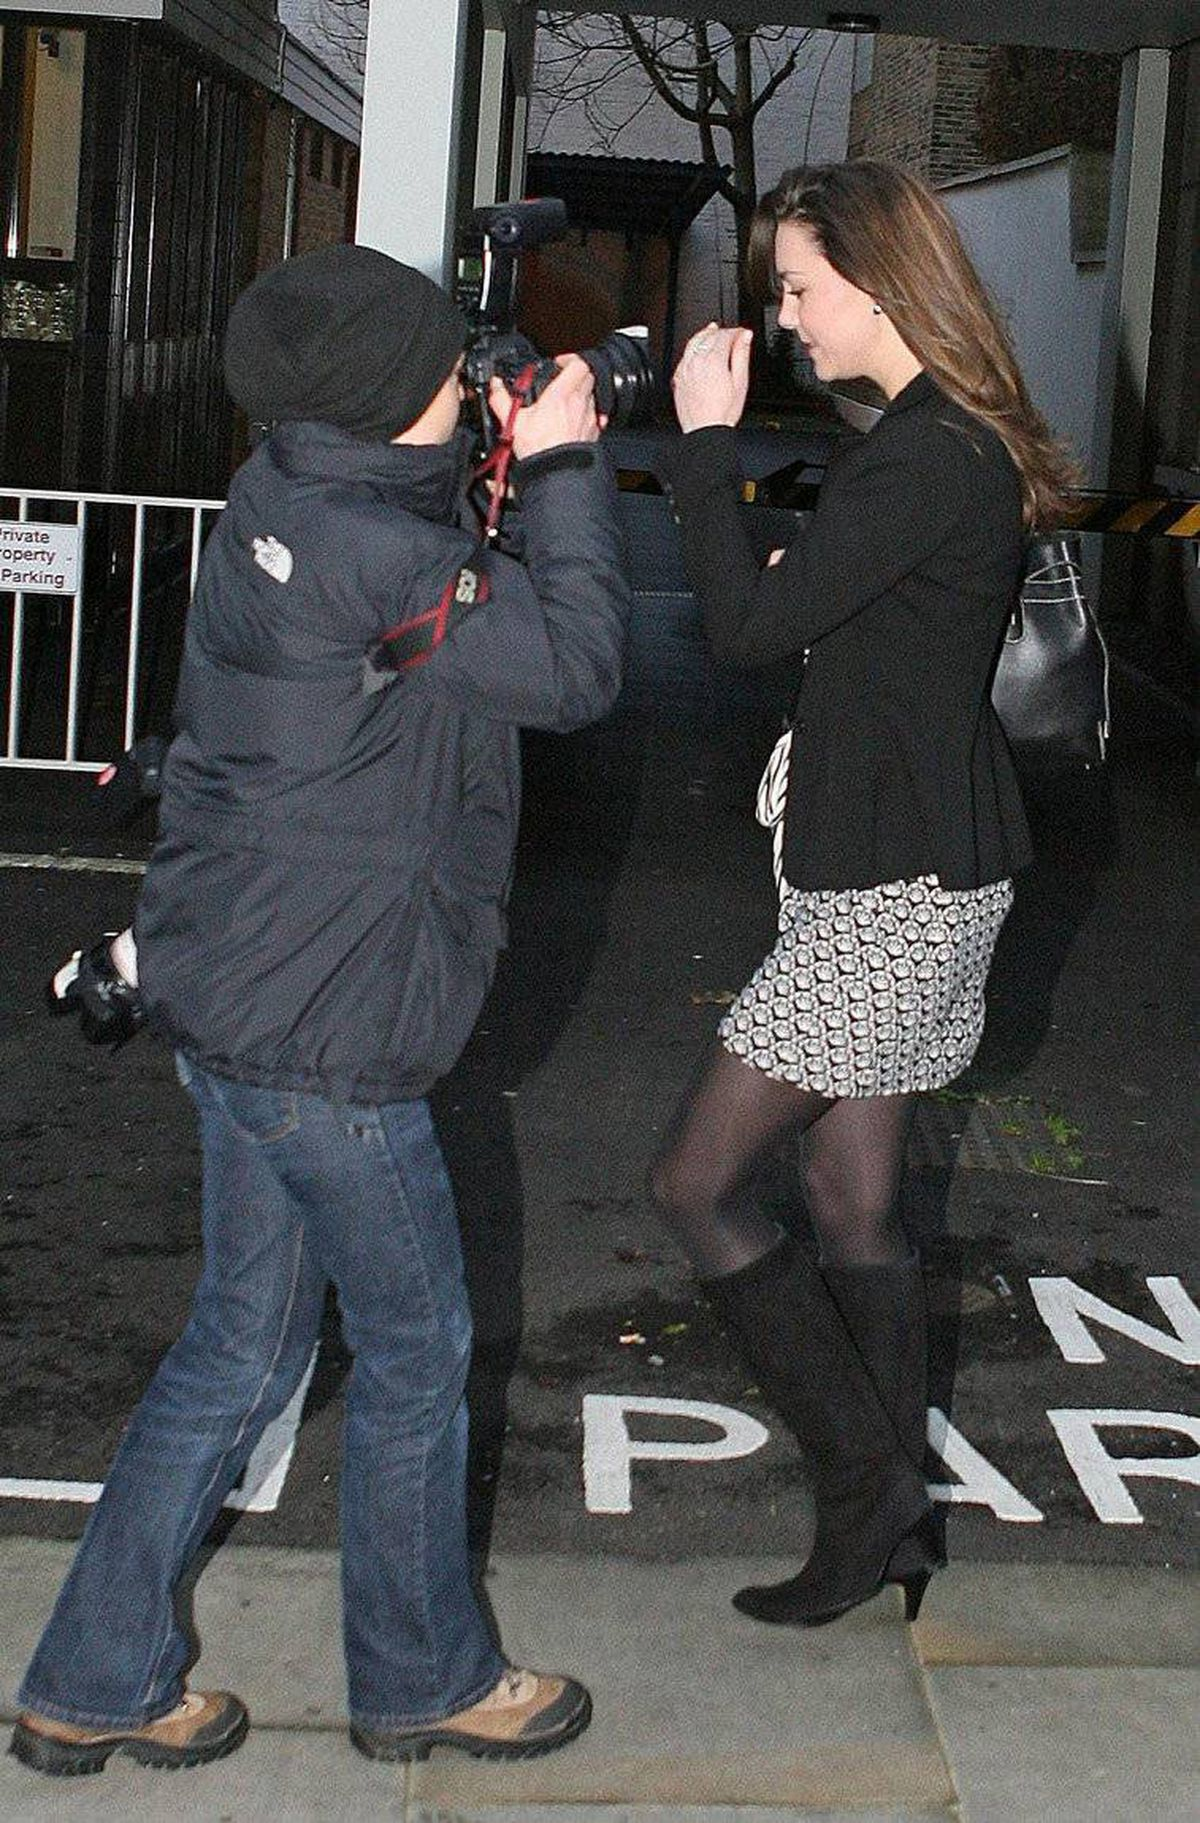 Kate Middleton is met by photographers outside her house in London on her 25th birthday Tuesday Jan. 9, 2007. Middleton made headlines for getting a parking ticket and on her fashion choices.